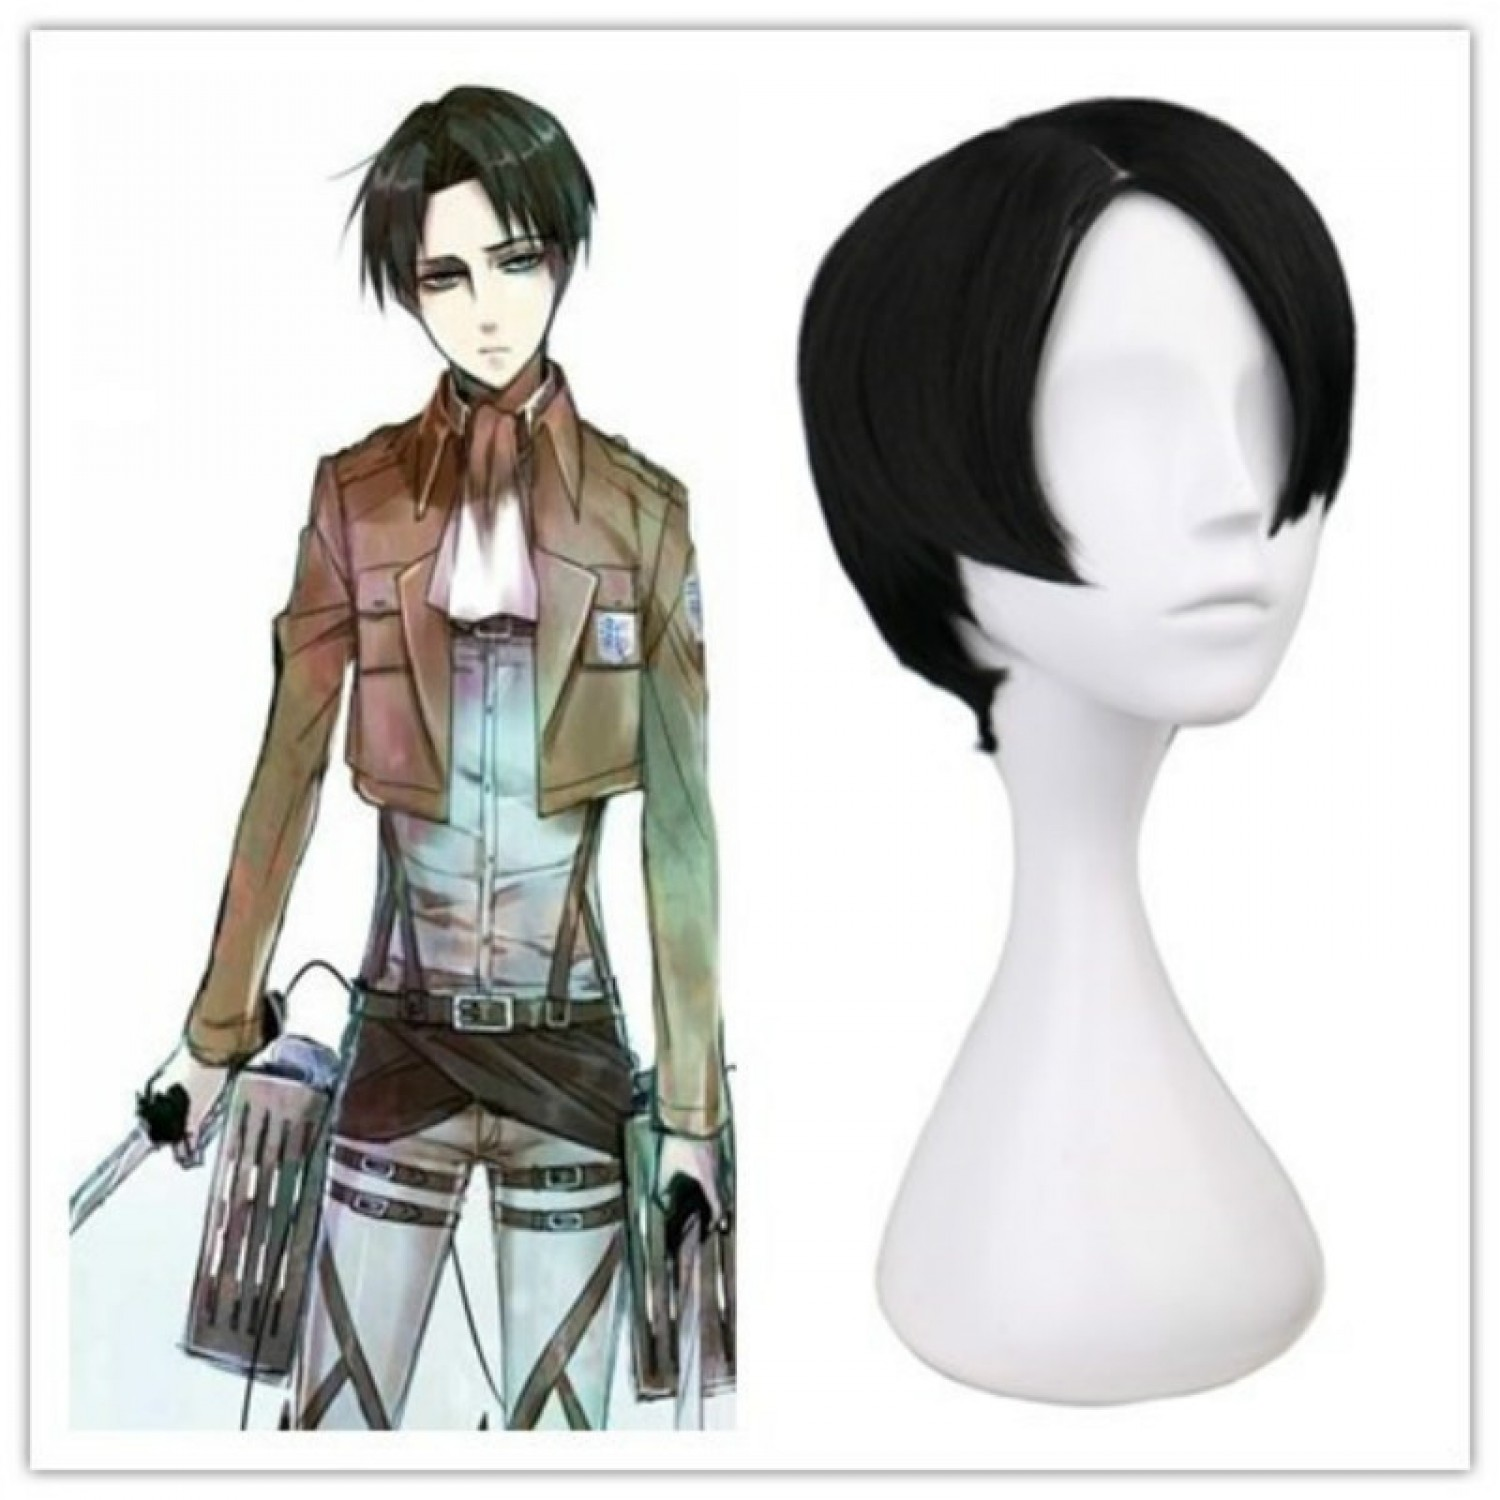 Cheap Attack On Titan Levi Ackerman Japan Anime Cosplay Wigs